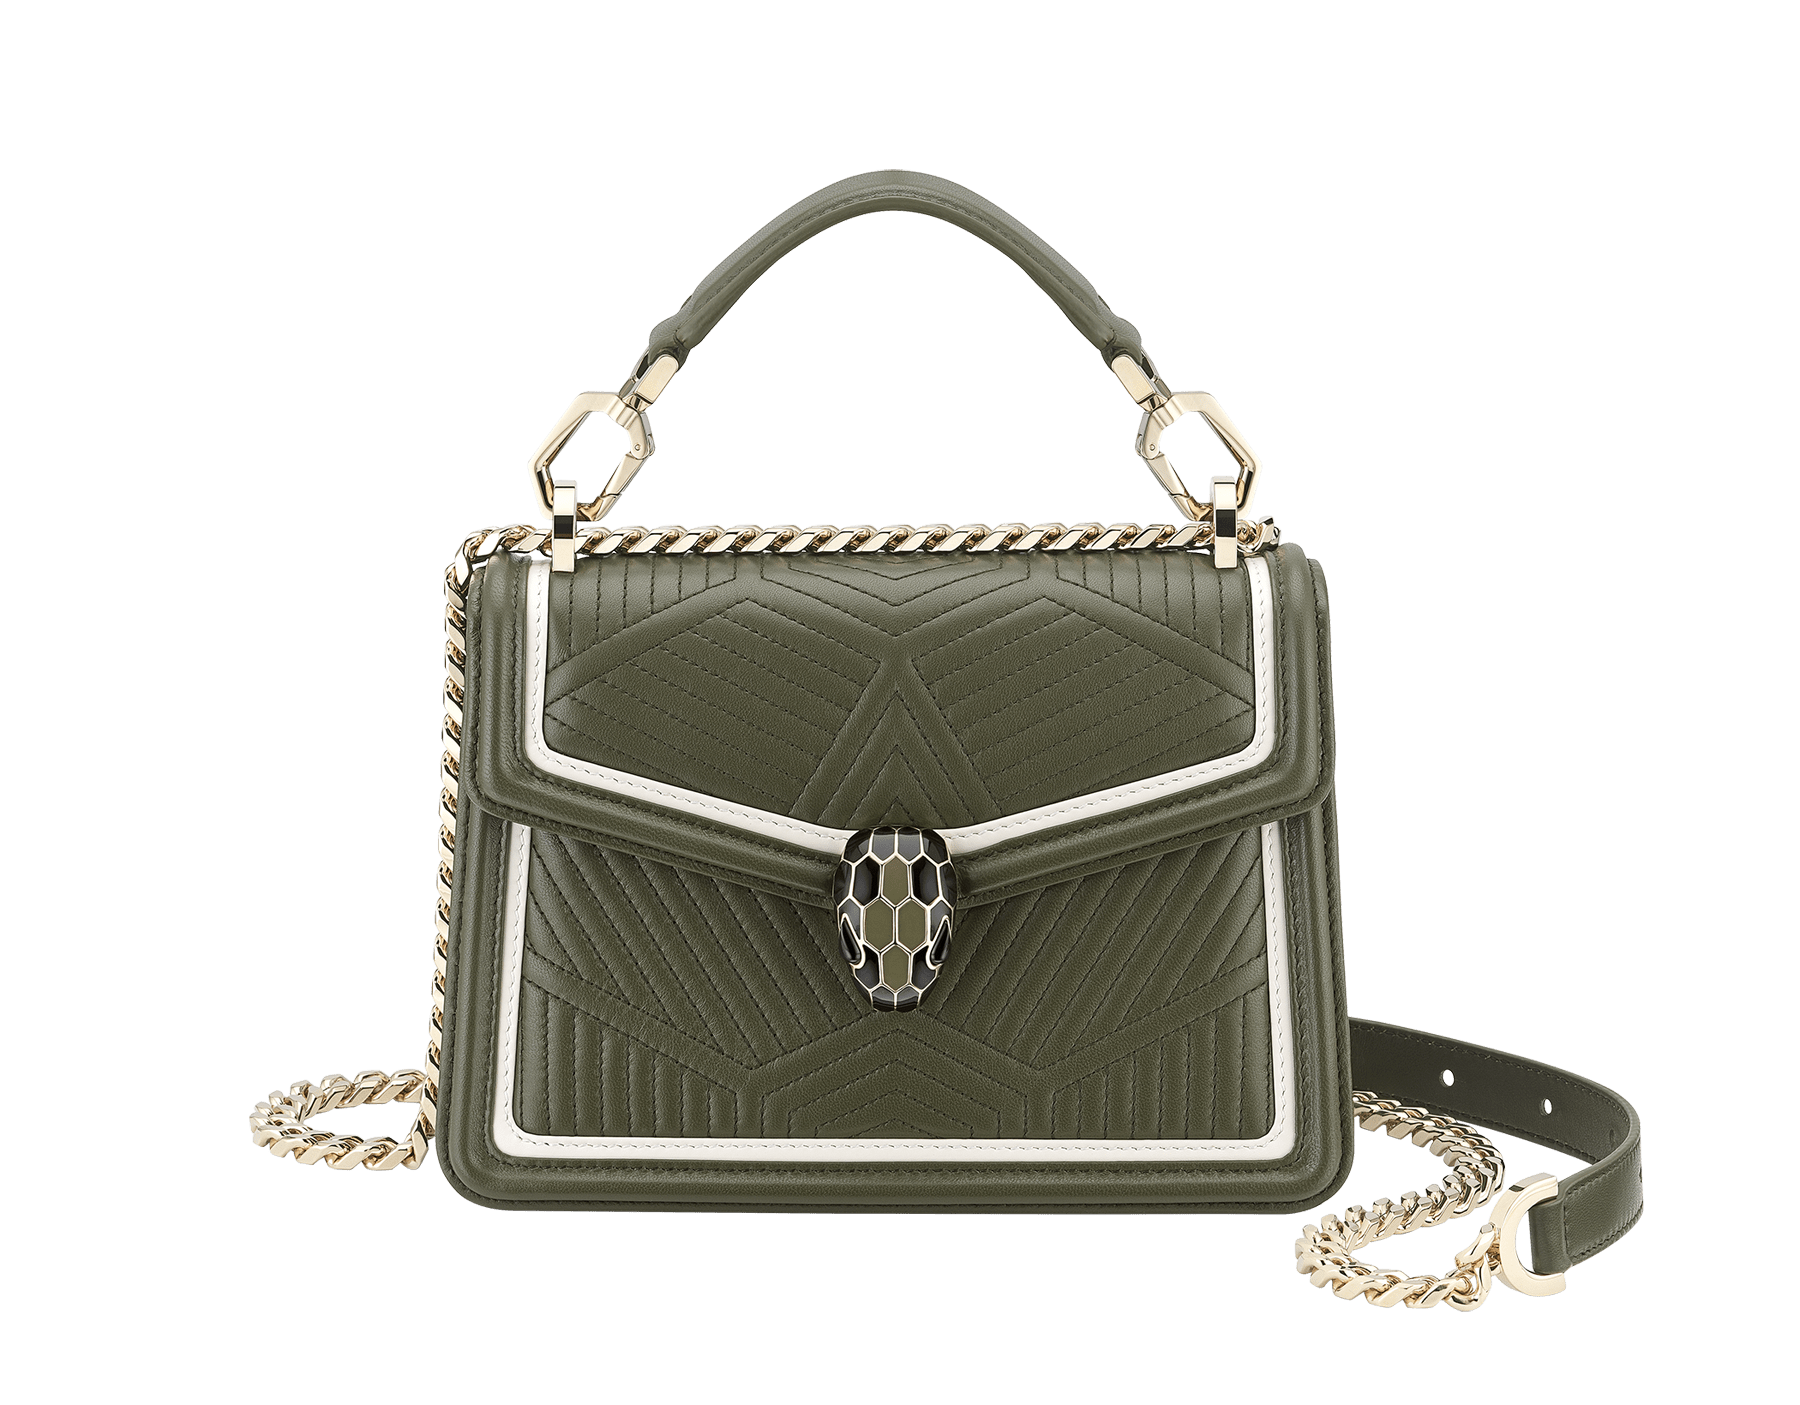 """Serpenti Diamond Blast"" top handle bag in mimetic jade quilted nappa leather and mimetic jade smooth calf leather frames. Iconic snakehead closure in light gold plated brass enriched with matte black and shiny mimetic jade enamel and black onyx eyes. 1063-FQD image 1"